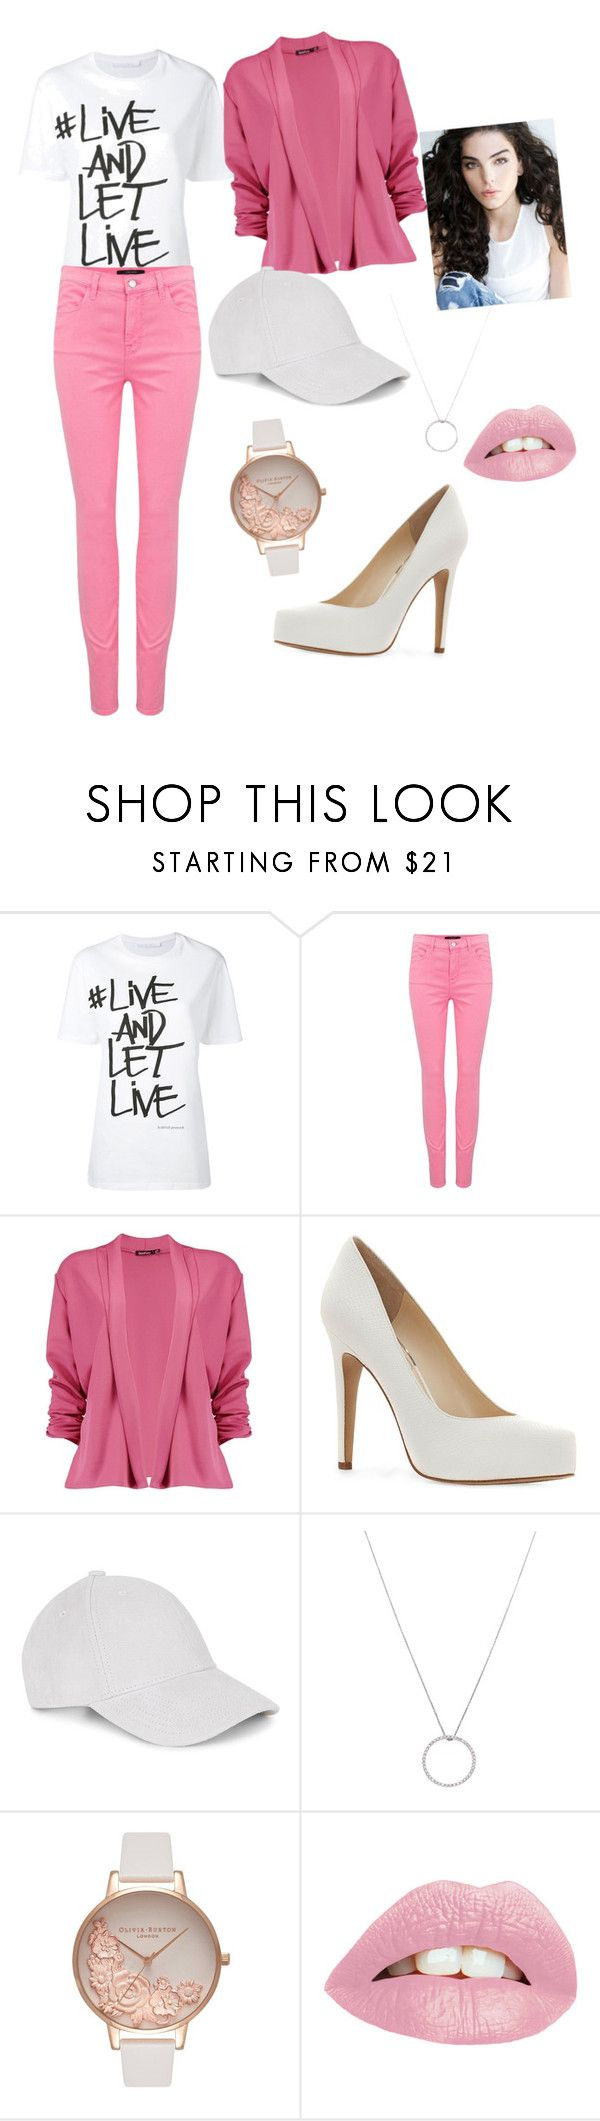 """Women's Style"" by jan45 ❤ liked on Polyvore featuring Neil Barrett, J Brand, Boohoo, Jessica Simpson, Le Amonie, Roberto Coin and Olivia Burton"